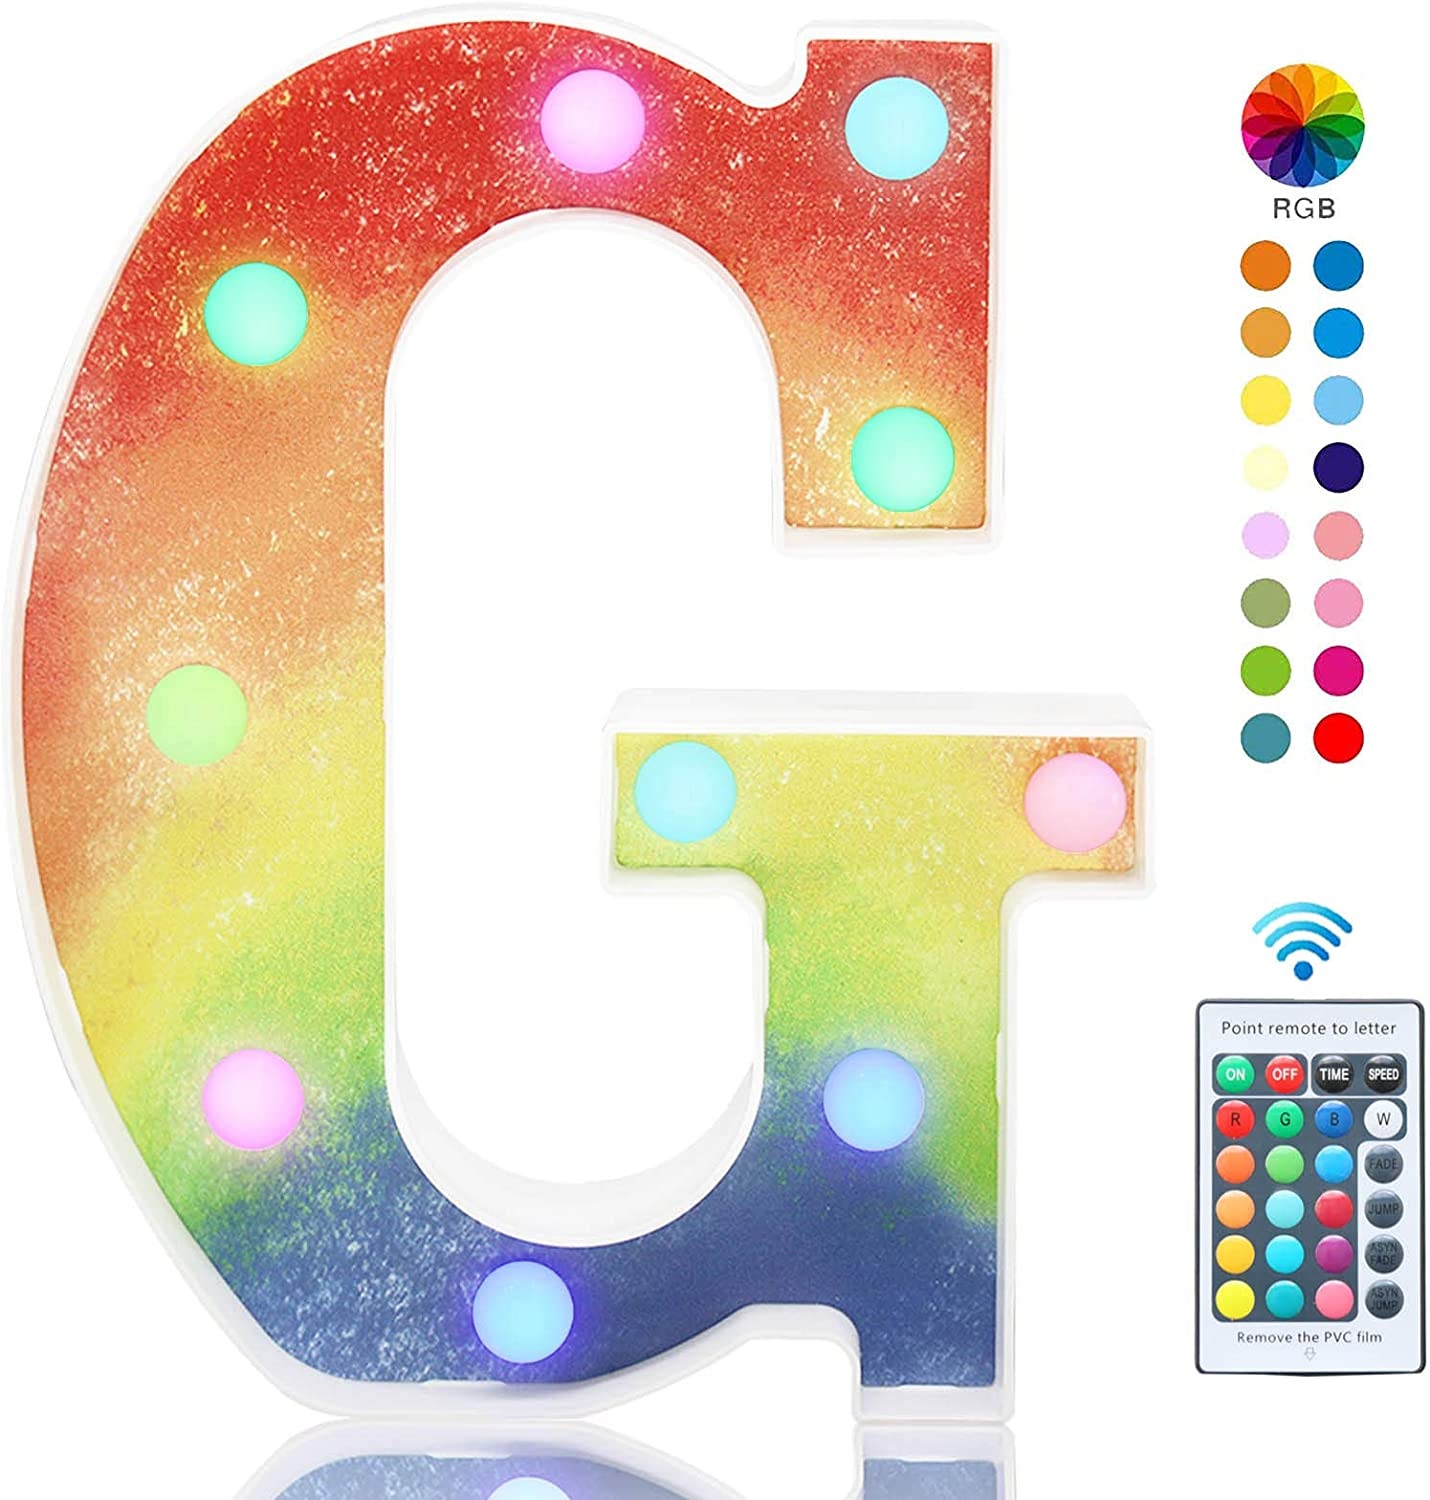 Pooqla Colorful LED Letter Lights with Remote, Light Up Multicolored Rainbow Letters, 16 Color Changing Battery Powered Night Light for Kids Wedding Birthday Party Christmas Home Decor, RGB Letter G